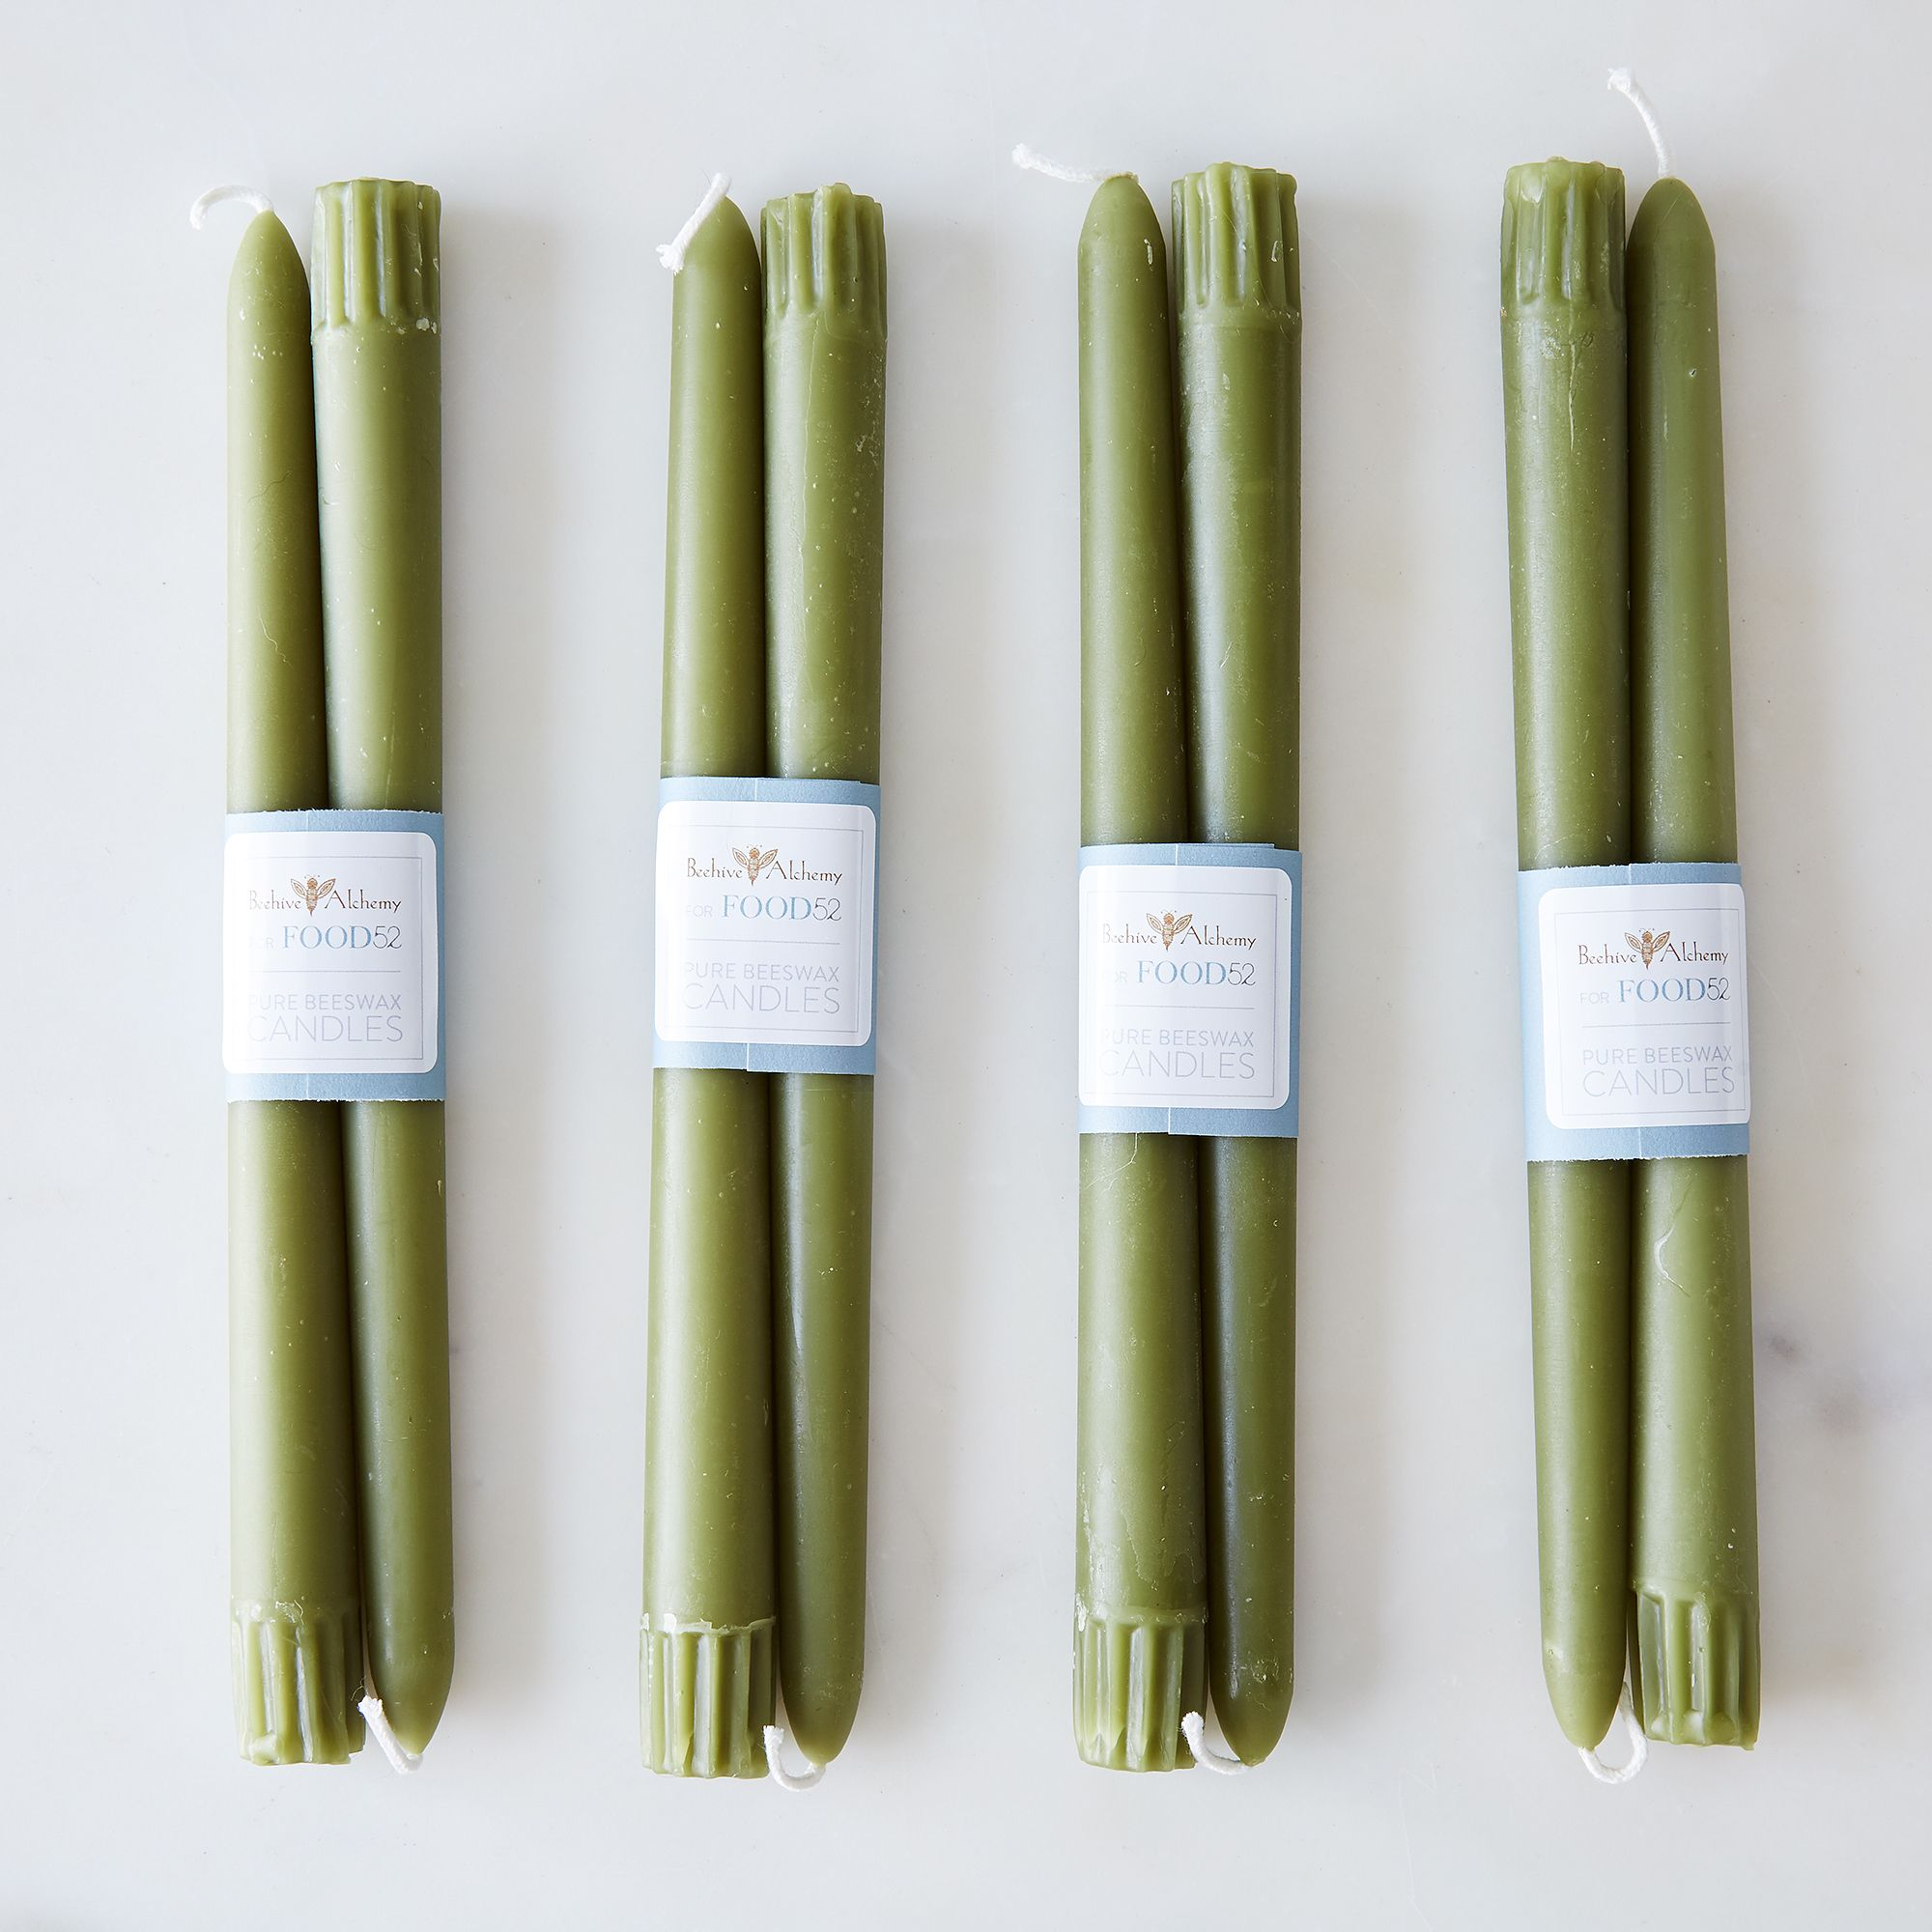 0ab34144 a0f8 11e5 a190 0ef7535729df  2015 0416 beehive alchemy 10 colored beeswax taper candles set of 8 moss silo bobbi lin 1425